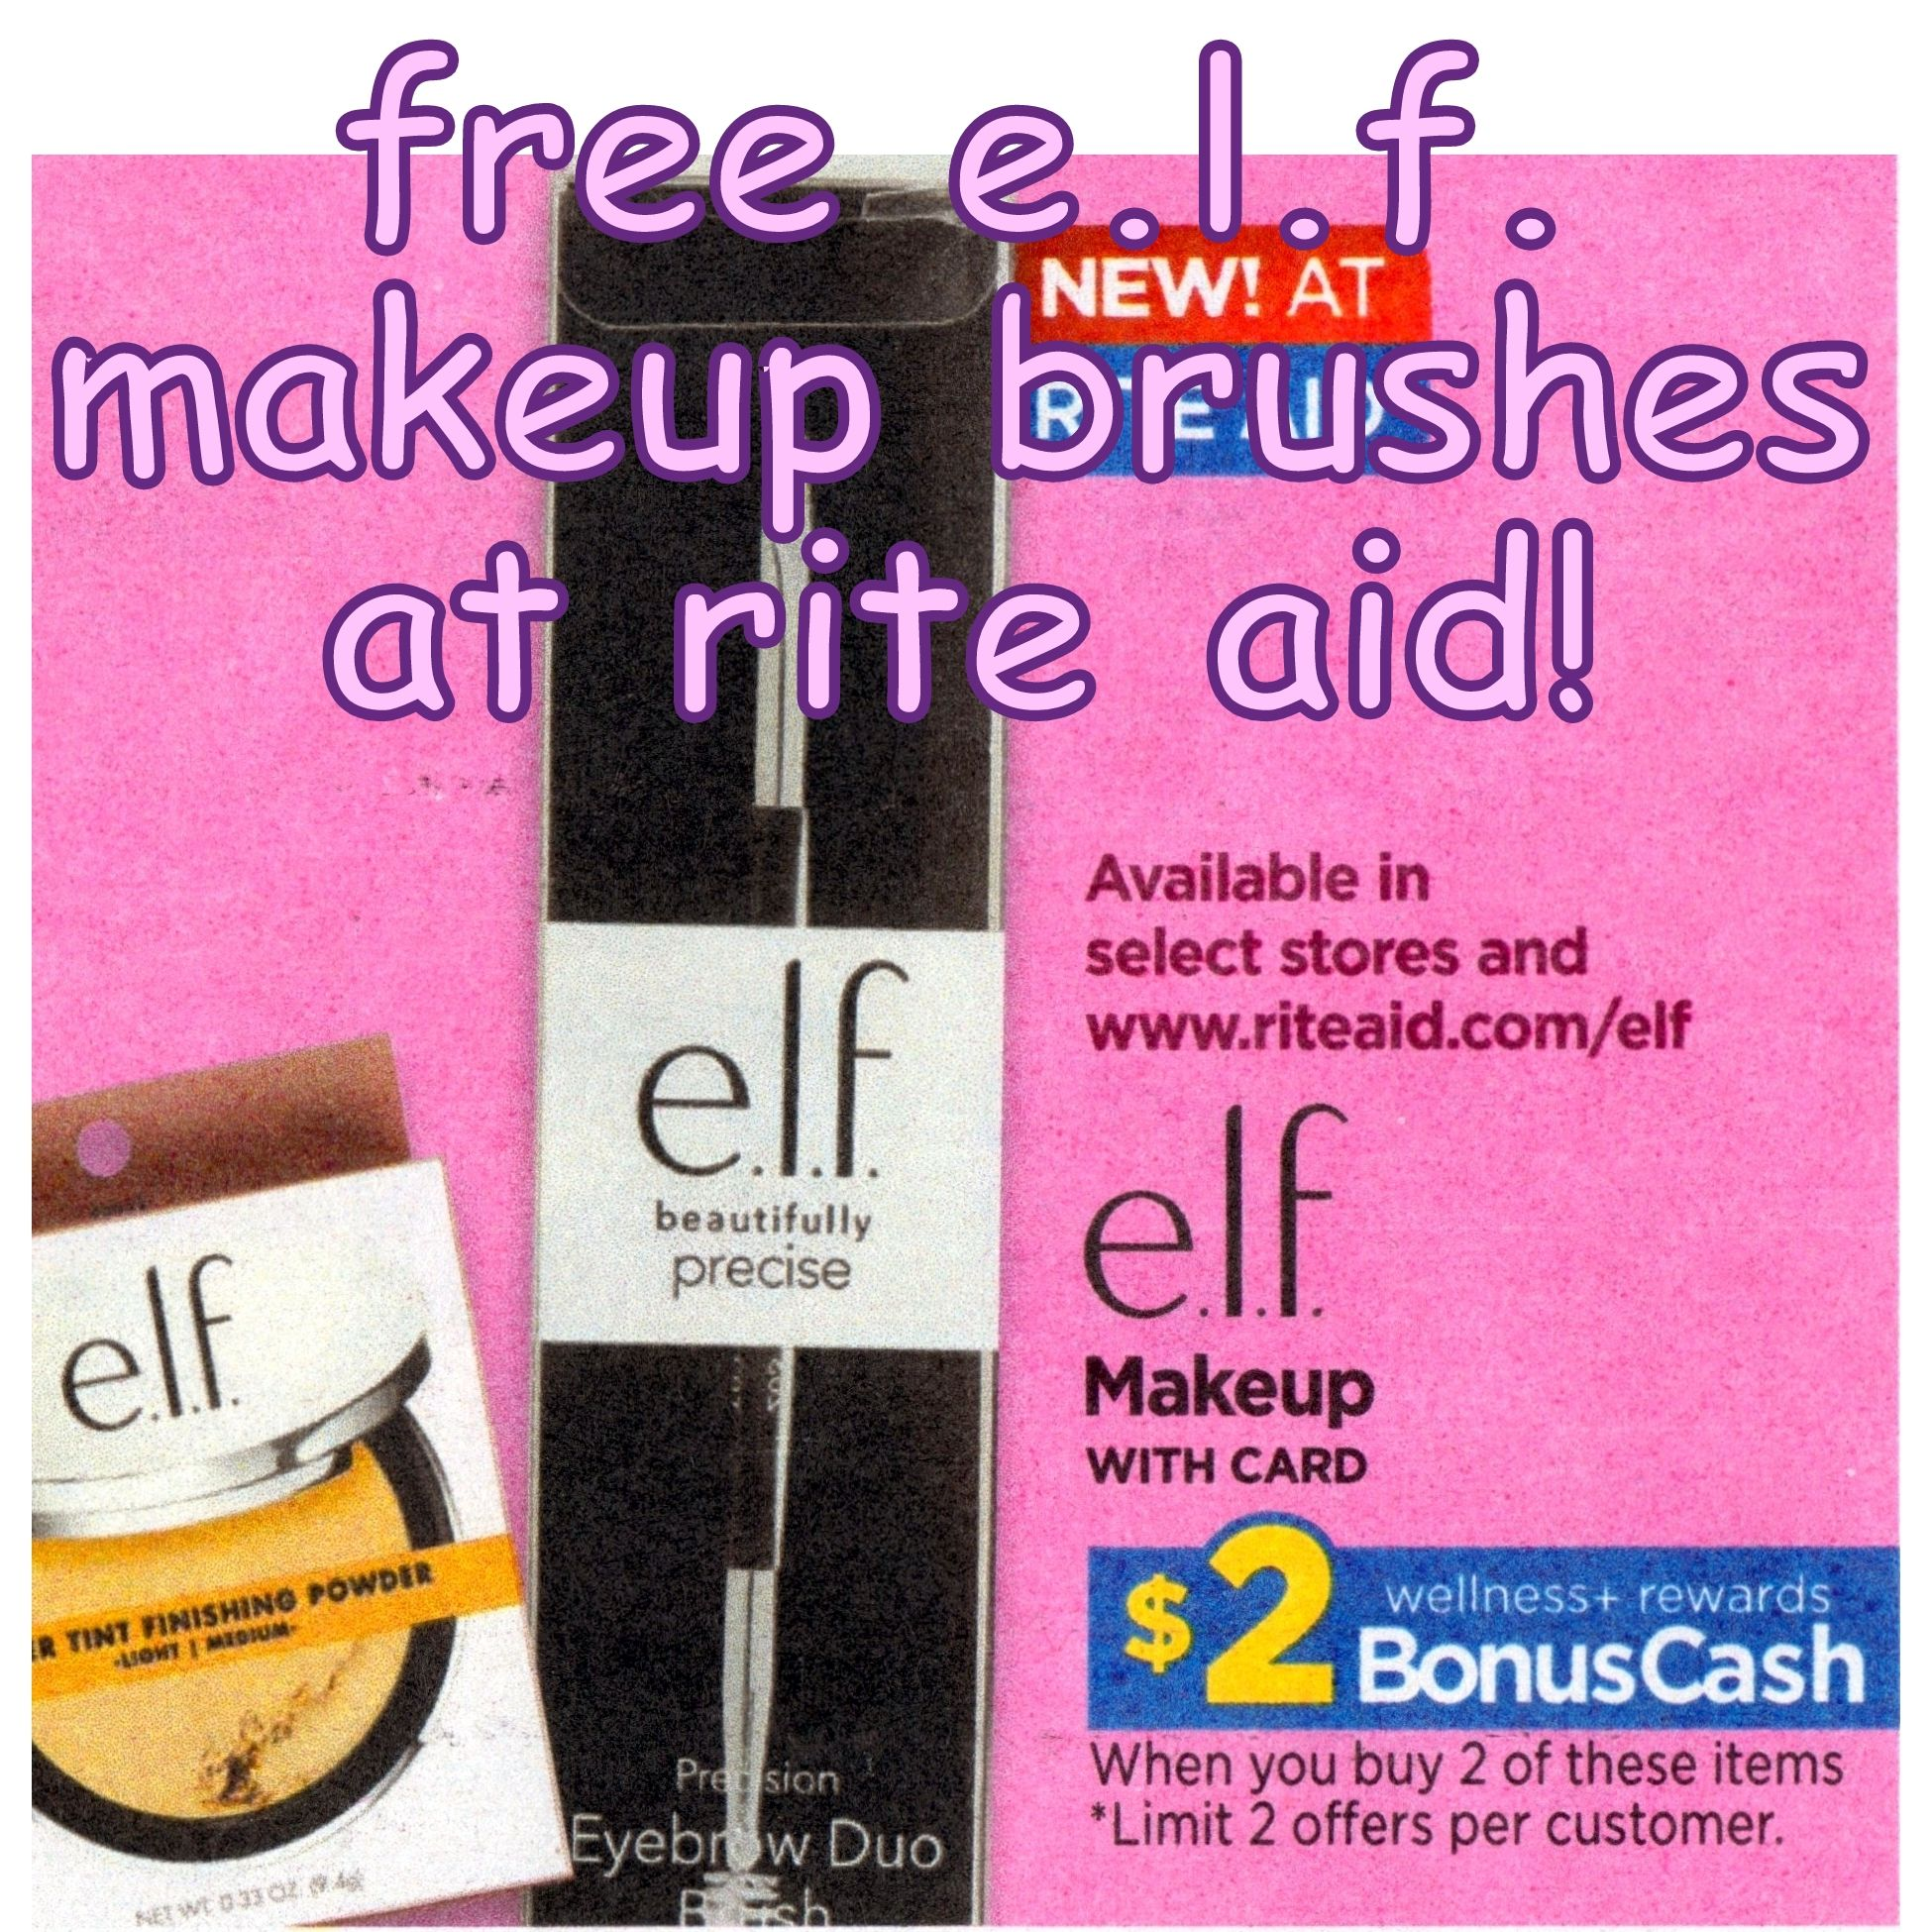 Free E L F Makeup Brushes At Rite Aid Details Here Http Www Iheartriteaid Com 2018 08 0826 0901 Html Elf Freebies Rite Rite Aid Makeup Brushes Makeup